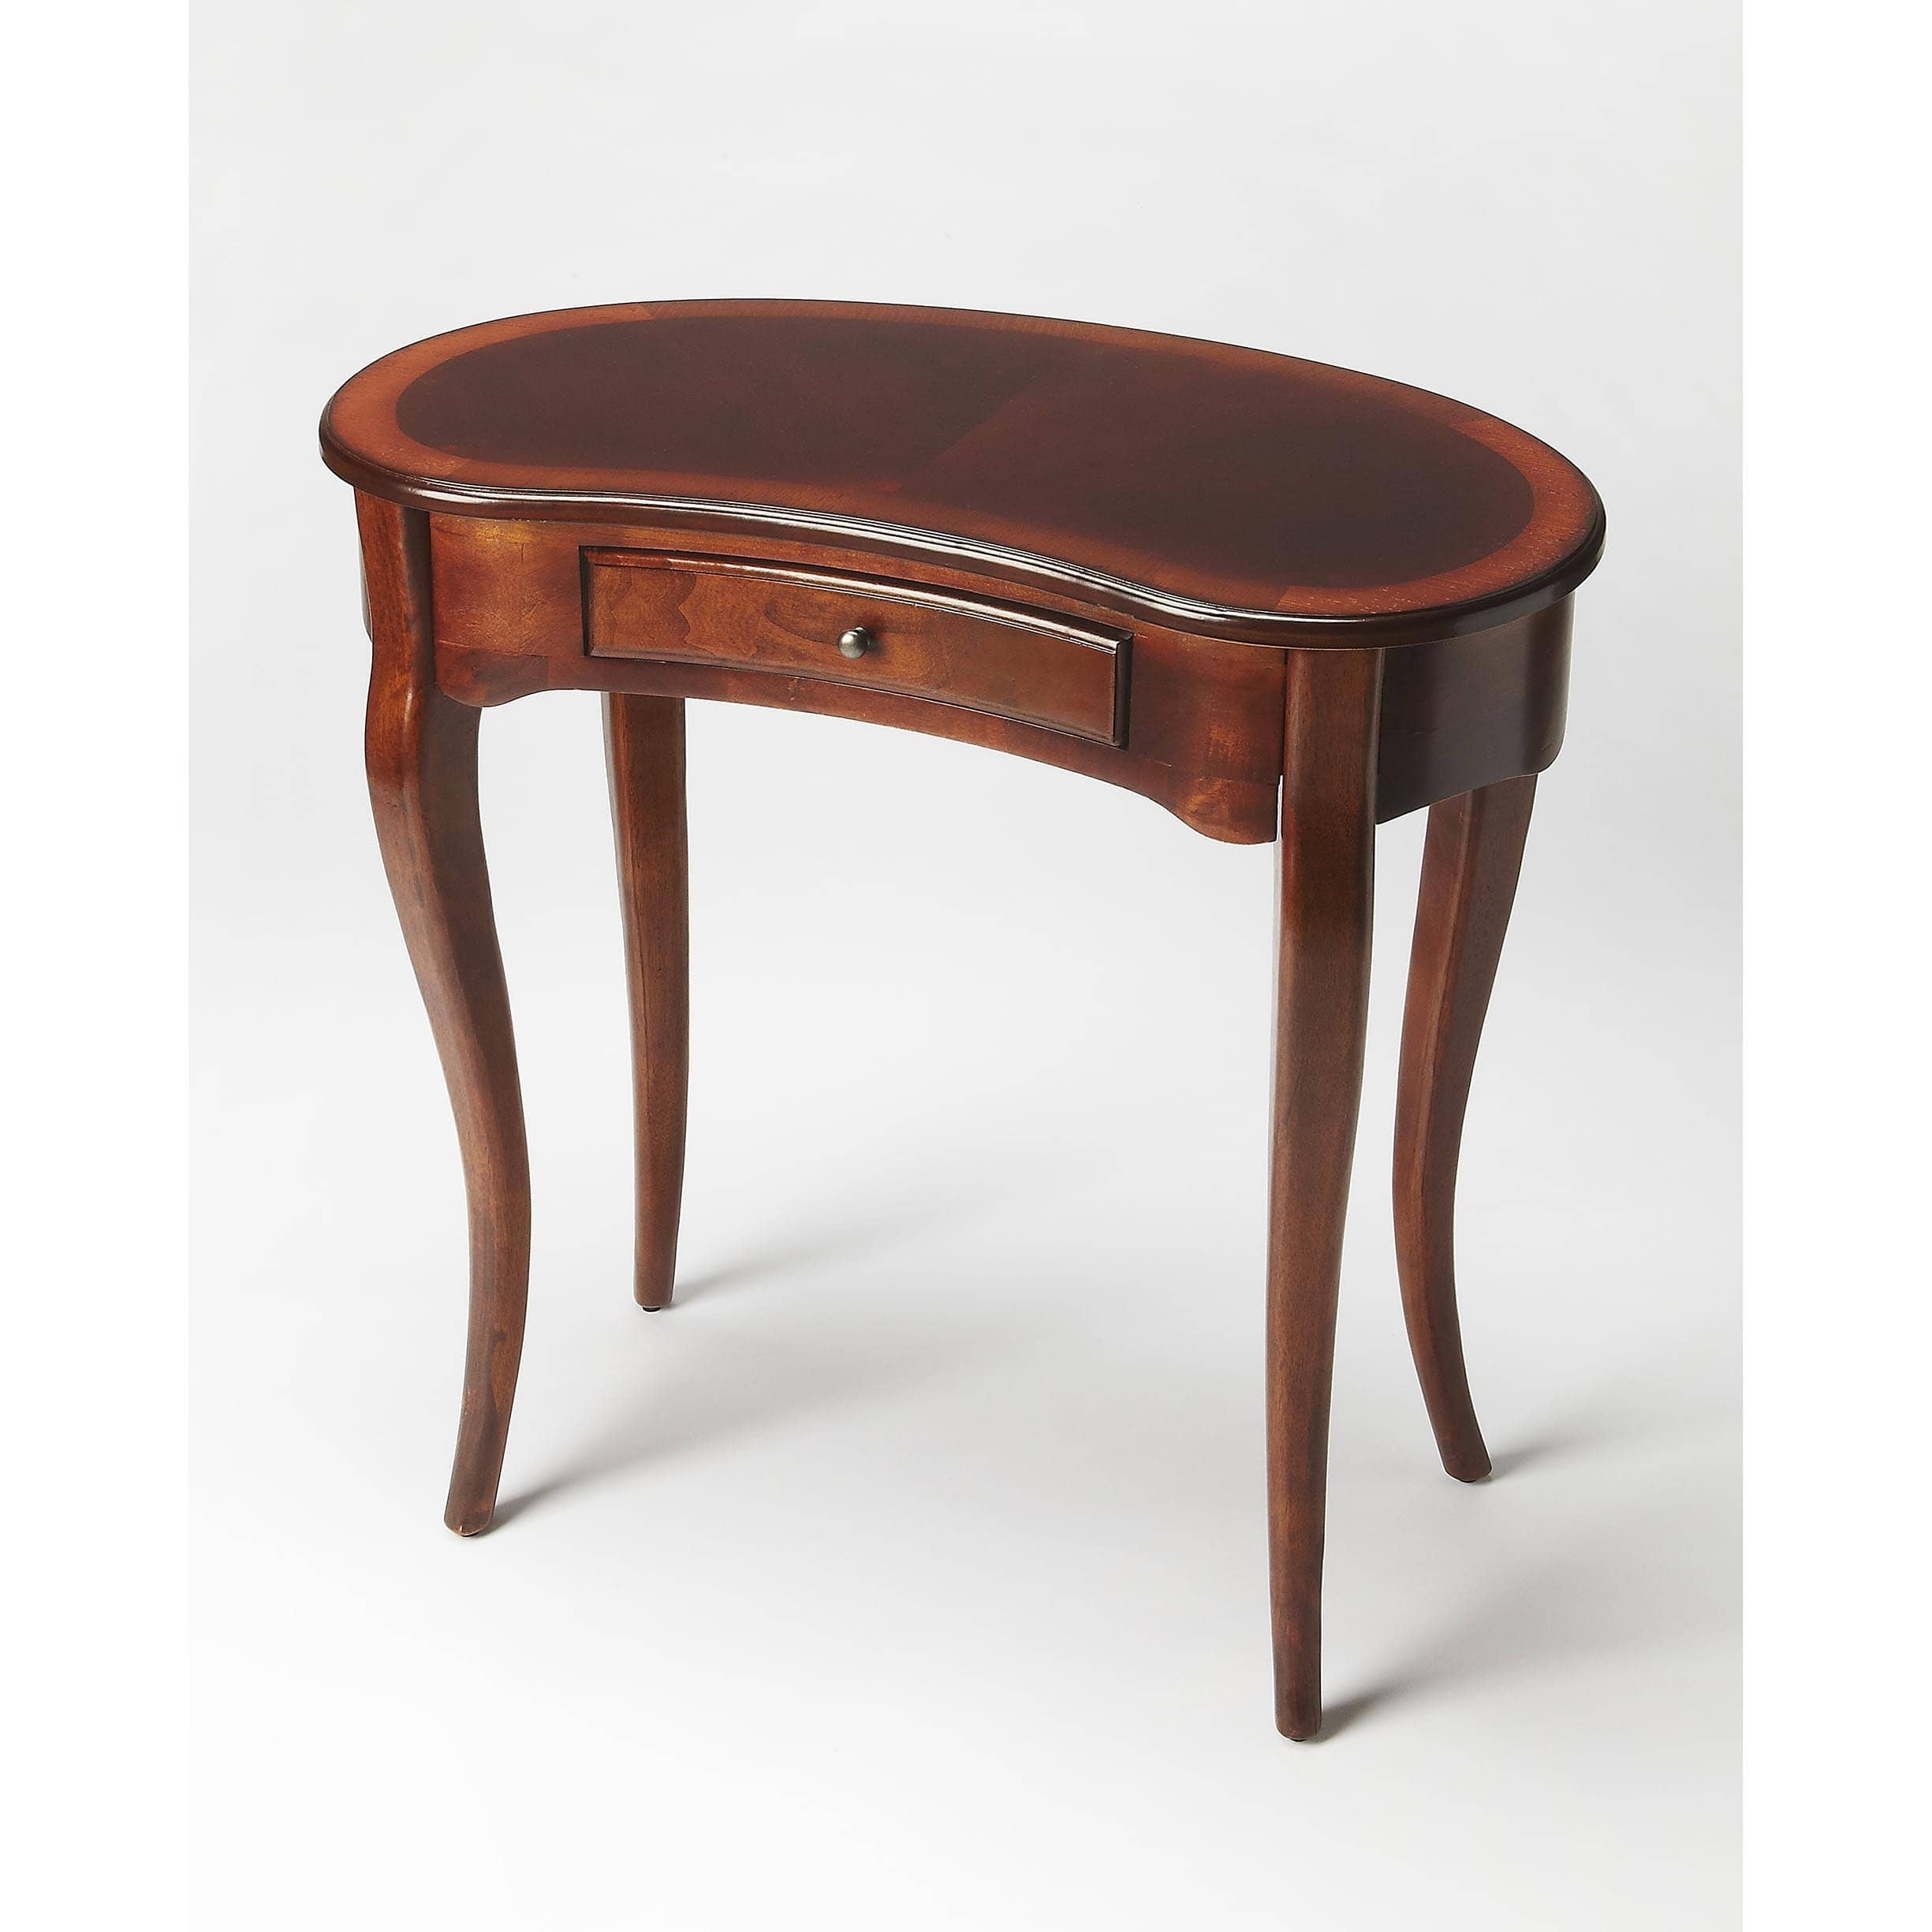 handmade butler edgewater plantation cherry writing desk small end table free shipping today coffee between two sofas black bear soft leather sofa ethan allen chandeliers side